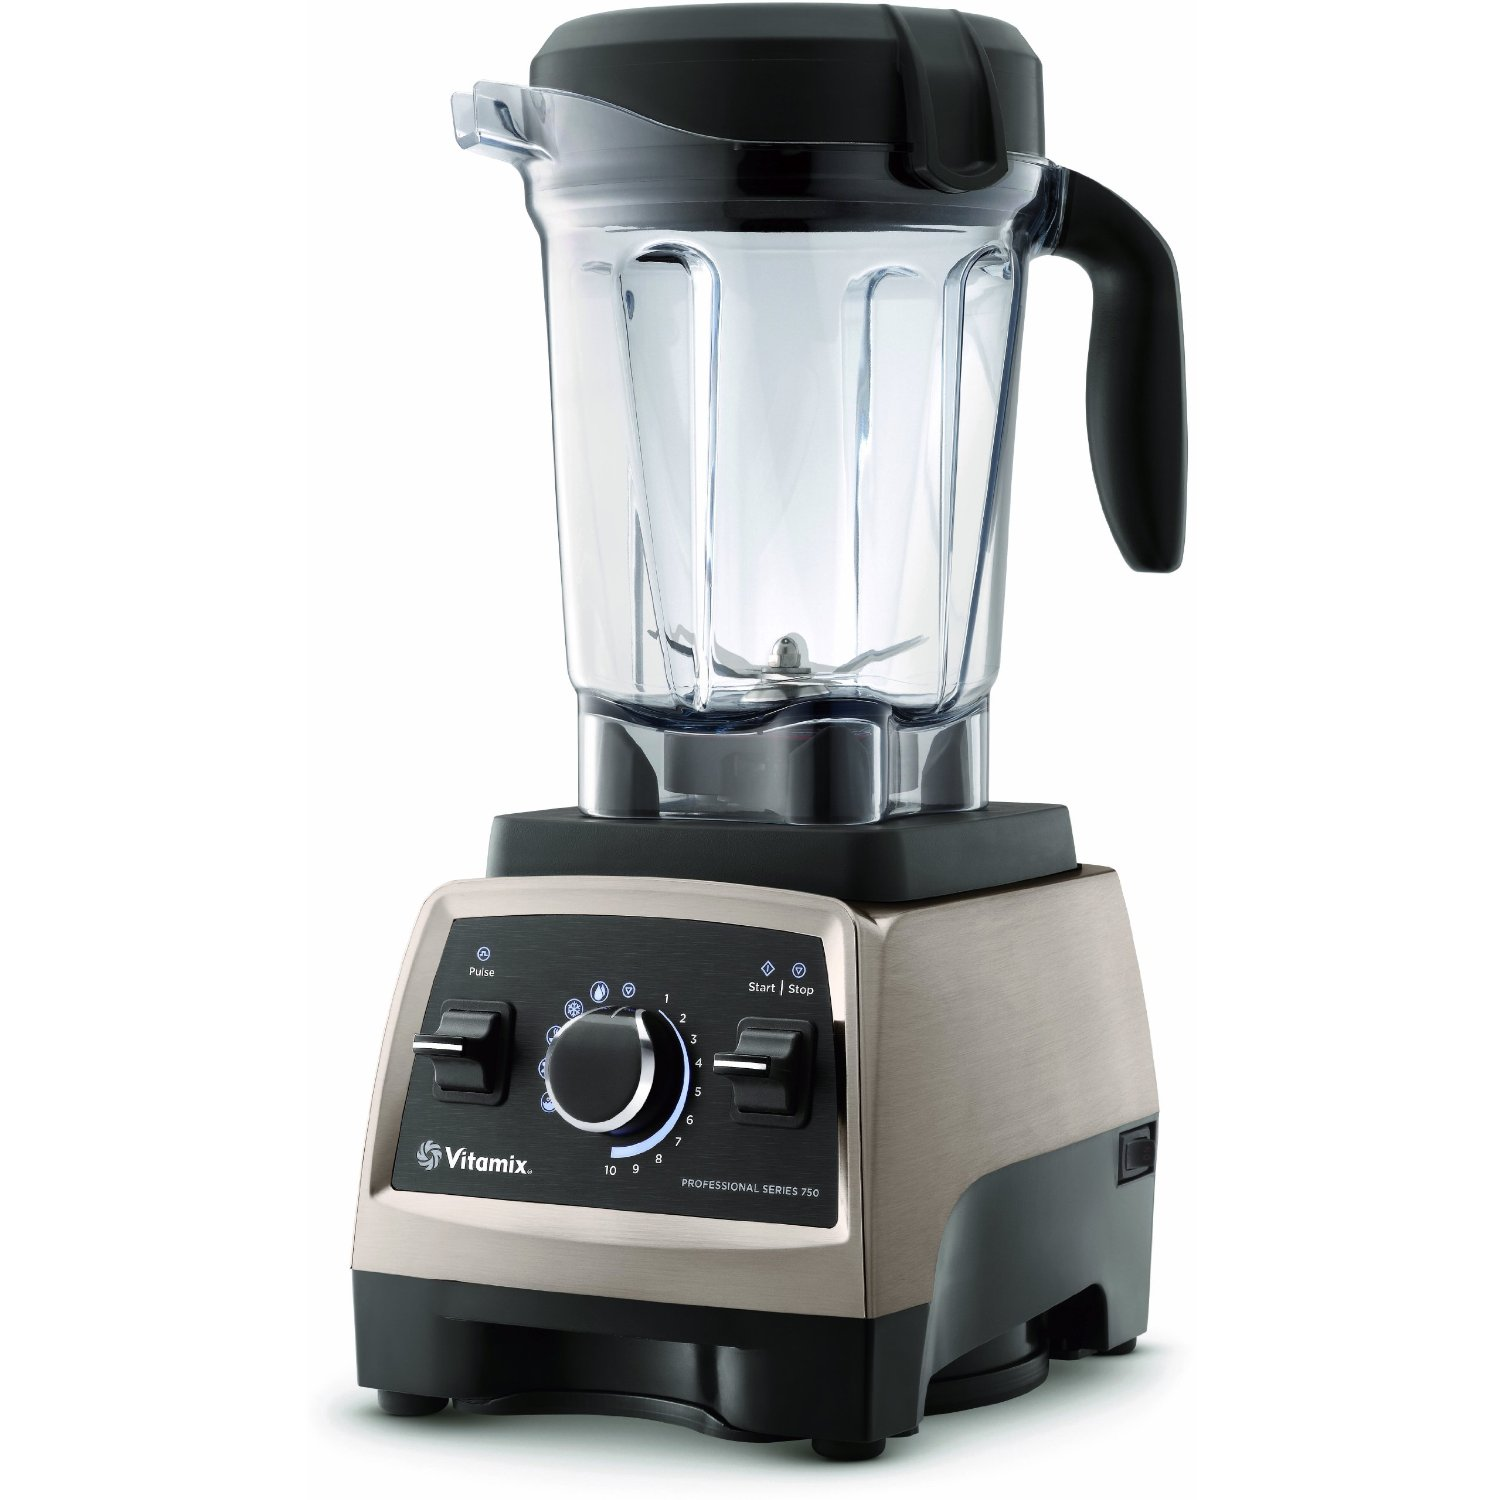 vitamix as anniversary gift for wifey